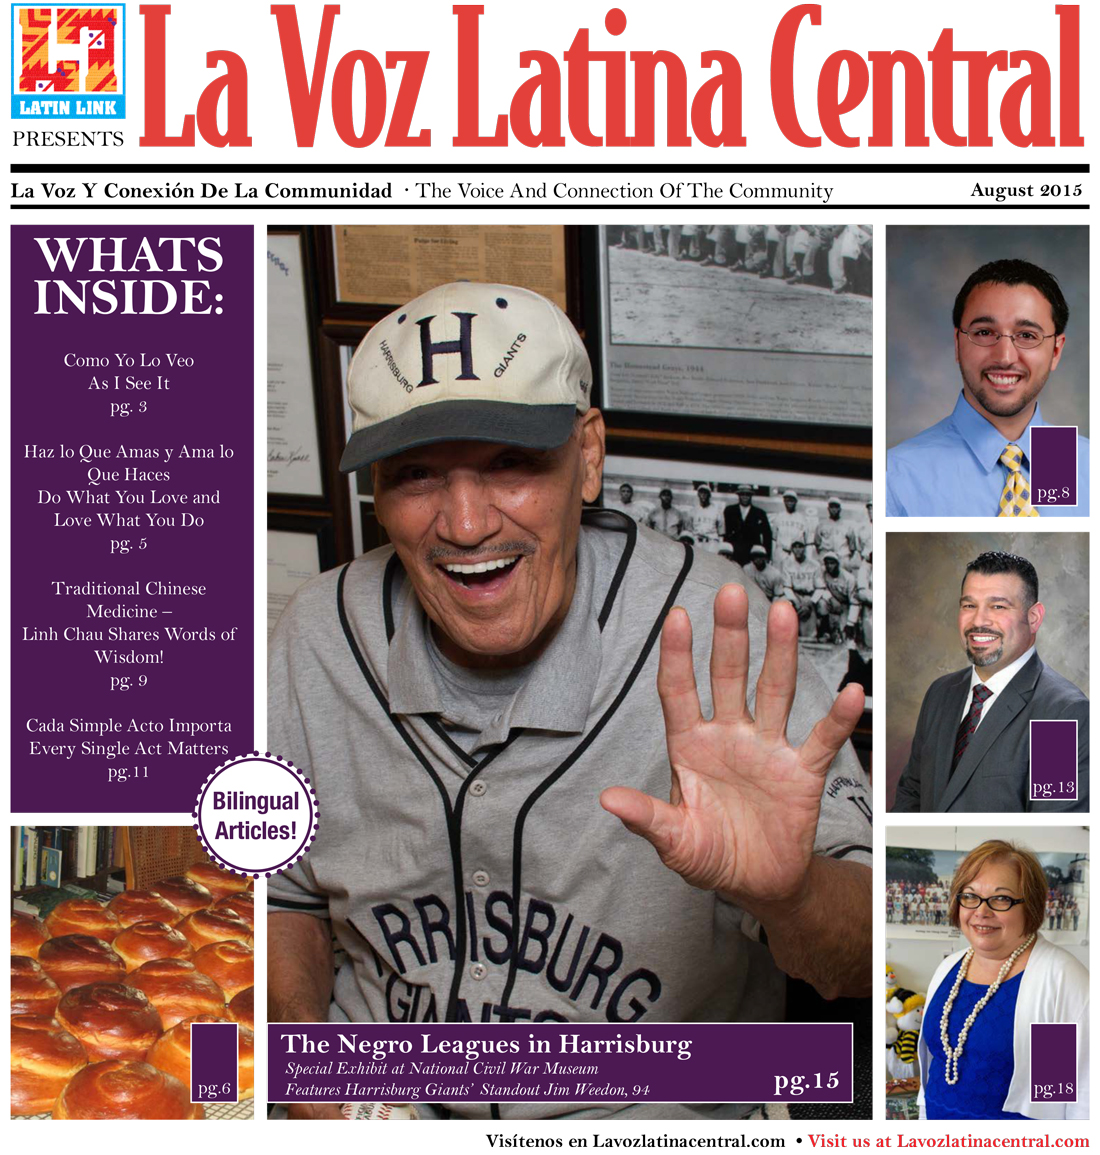 La Voz Latina Central August 2015 ~ Jim Weedon